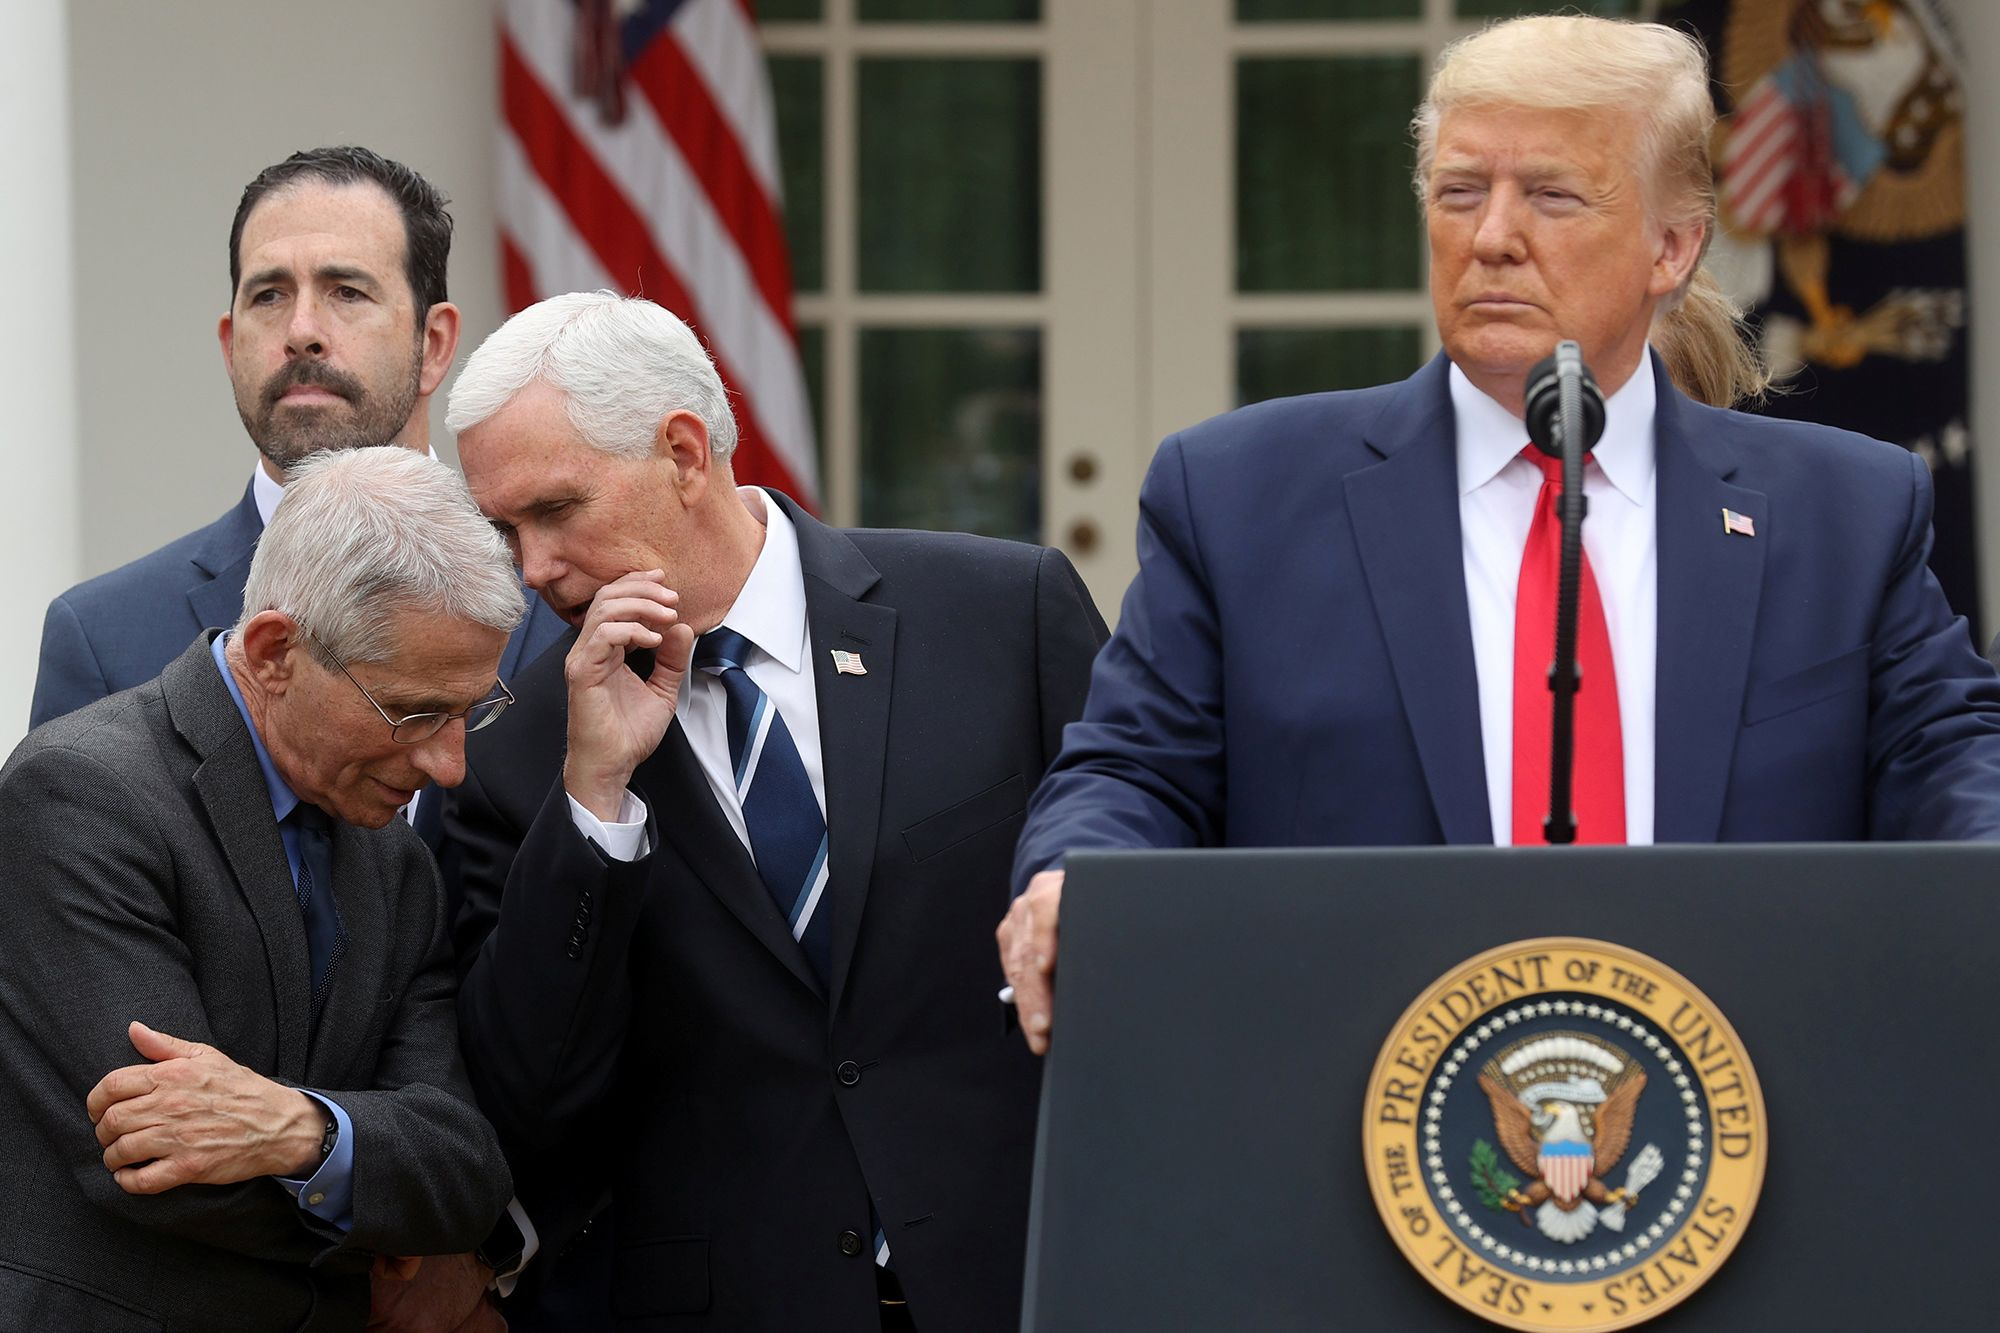 Vice President Mike Pence speaks with Anthony Fauci, director of the National Institutes of Allergy and Infectious Diseases, at the White House as President Donald Trump declared the coronavirus pandemic a national emergency.